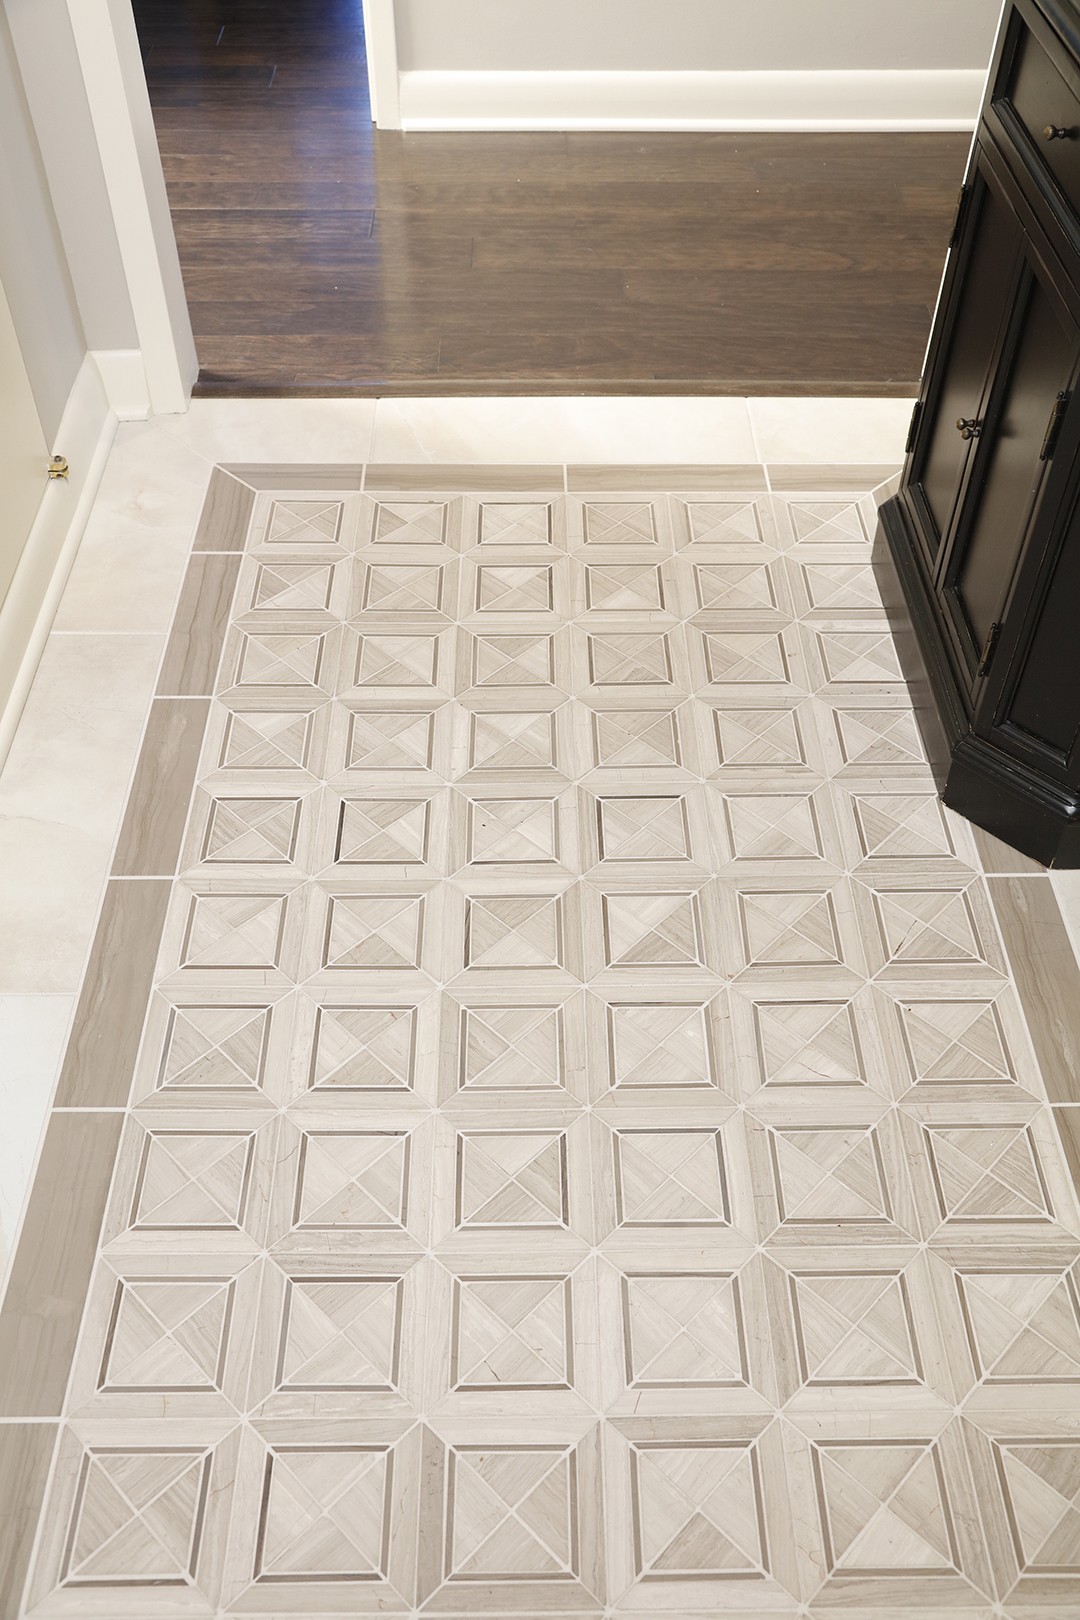 Decorative floor tile inlay